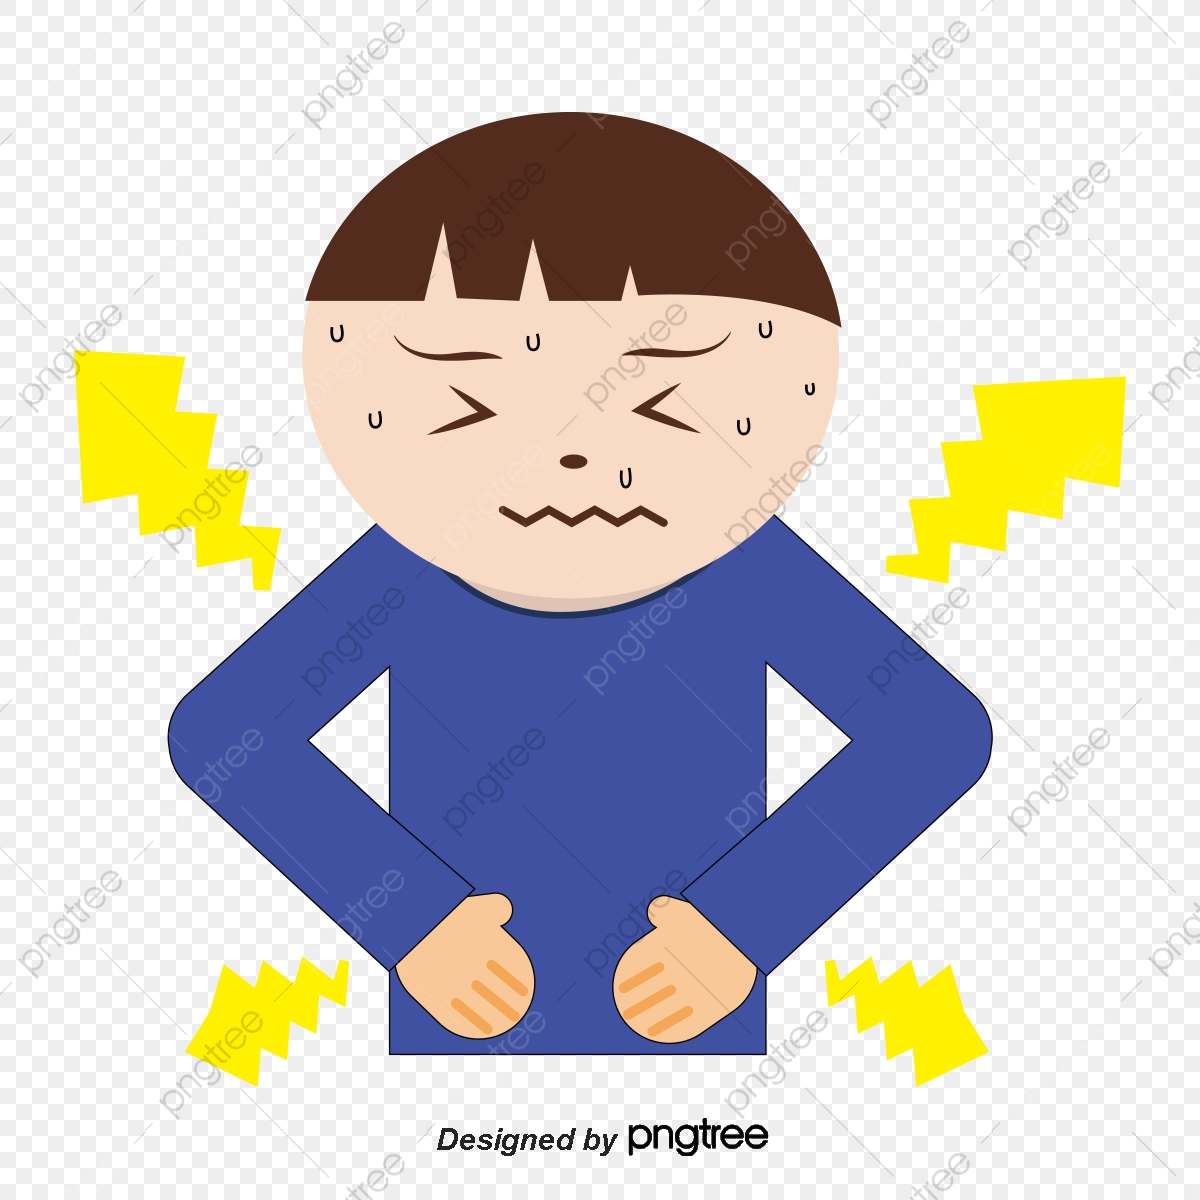 cartoon characters stomach pain expression cartoon vector stomachache painful expression png transparent clipart image and psd file for free download https pngtree com freepng cartoon characters stomach pain expression 2920307 html